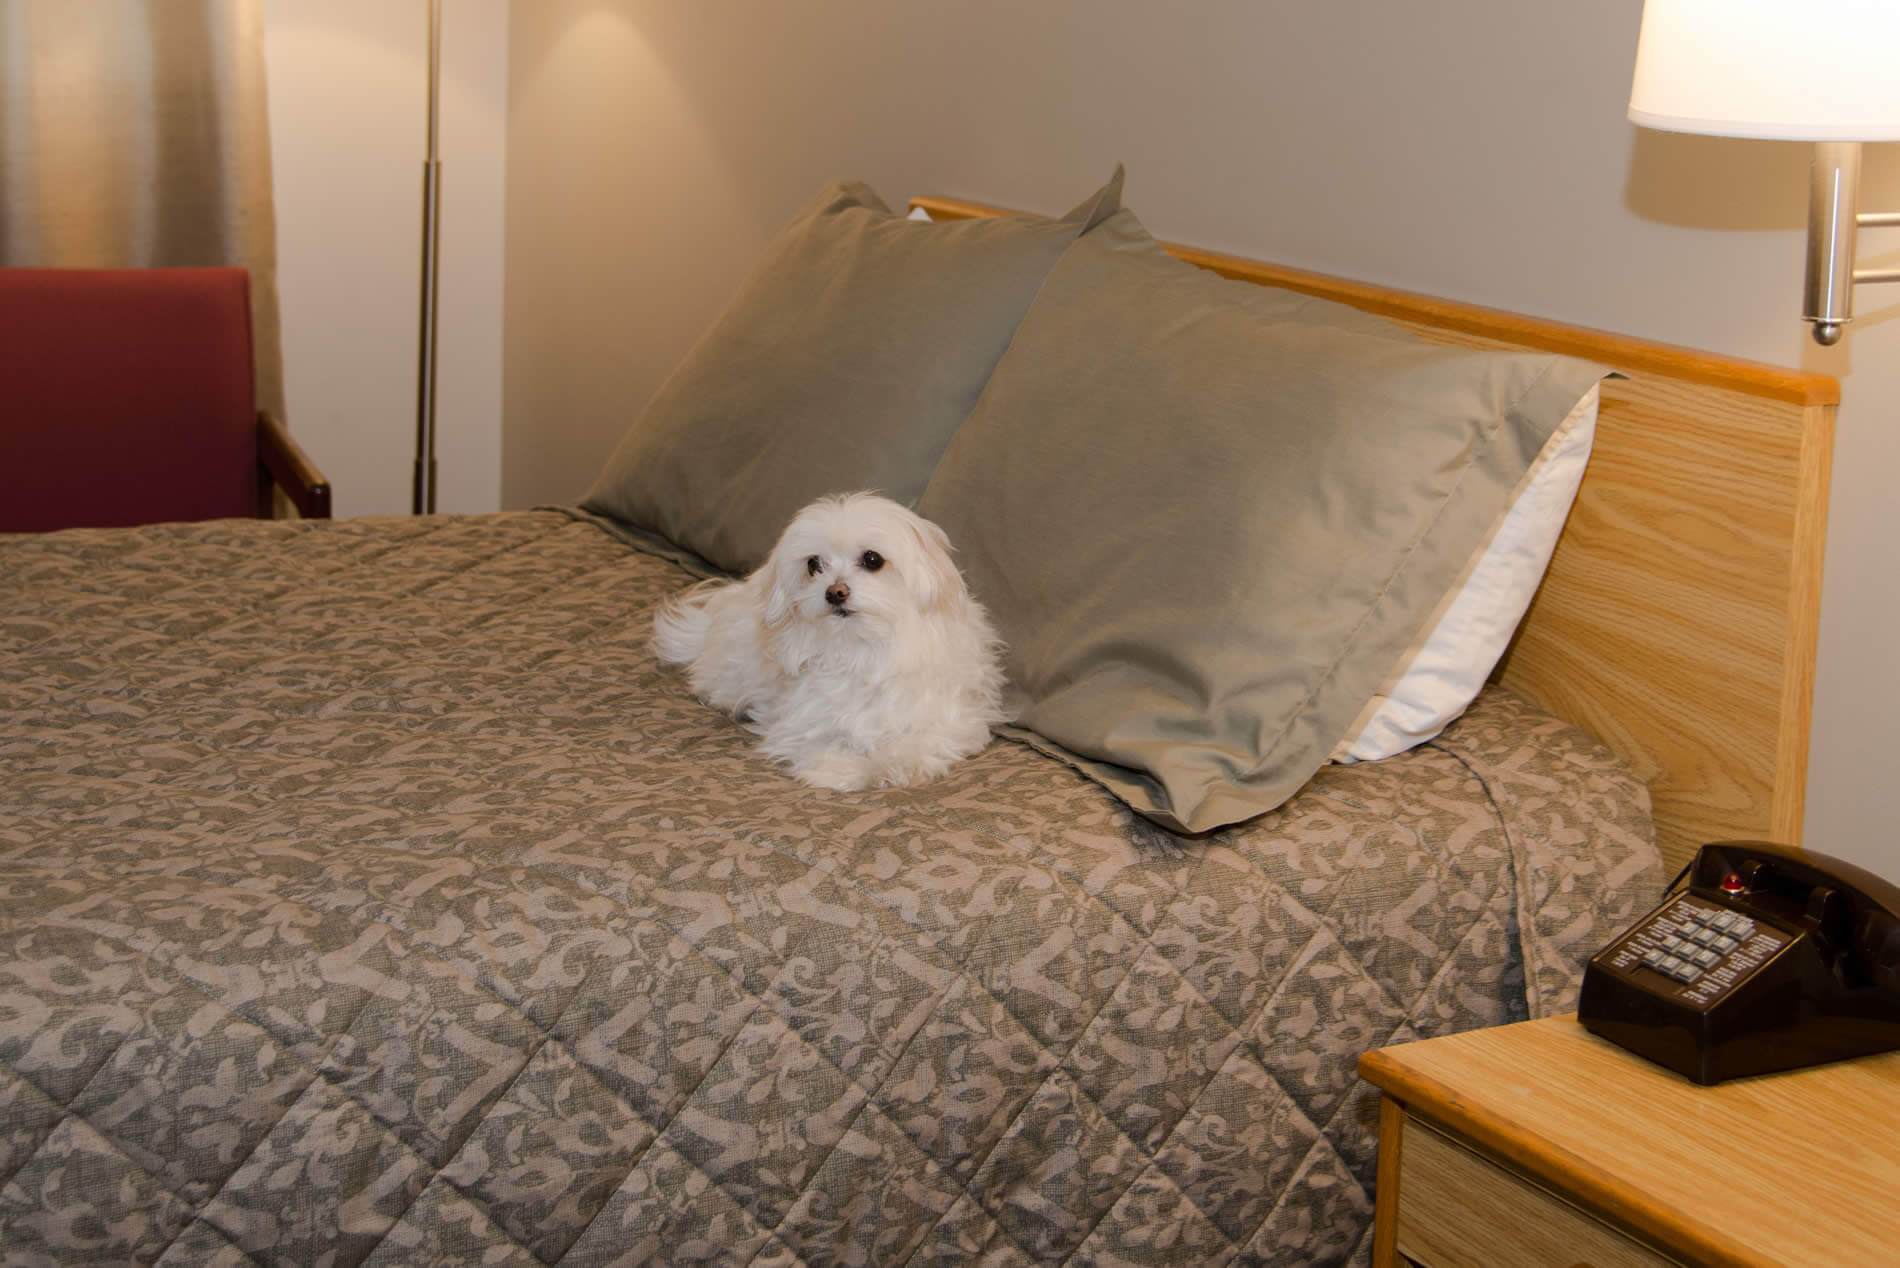 Room with small, white fluffy dog o bed with green bedding.